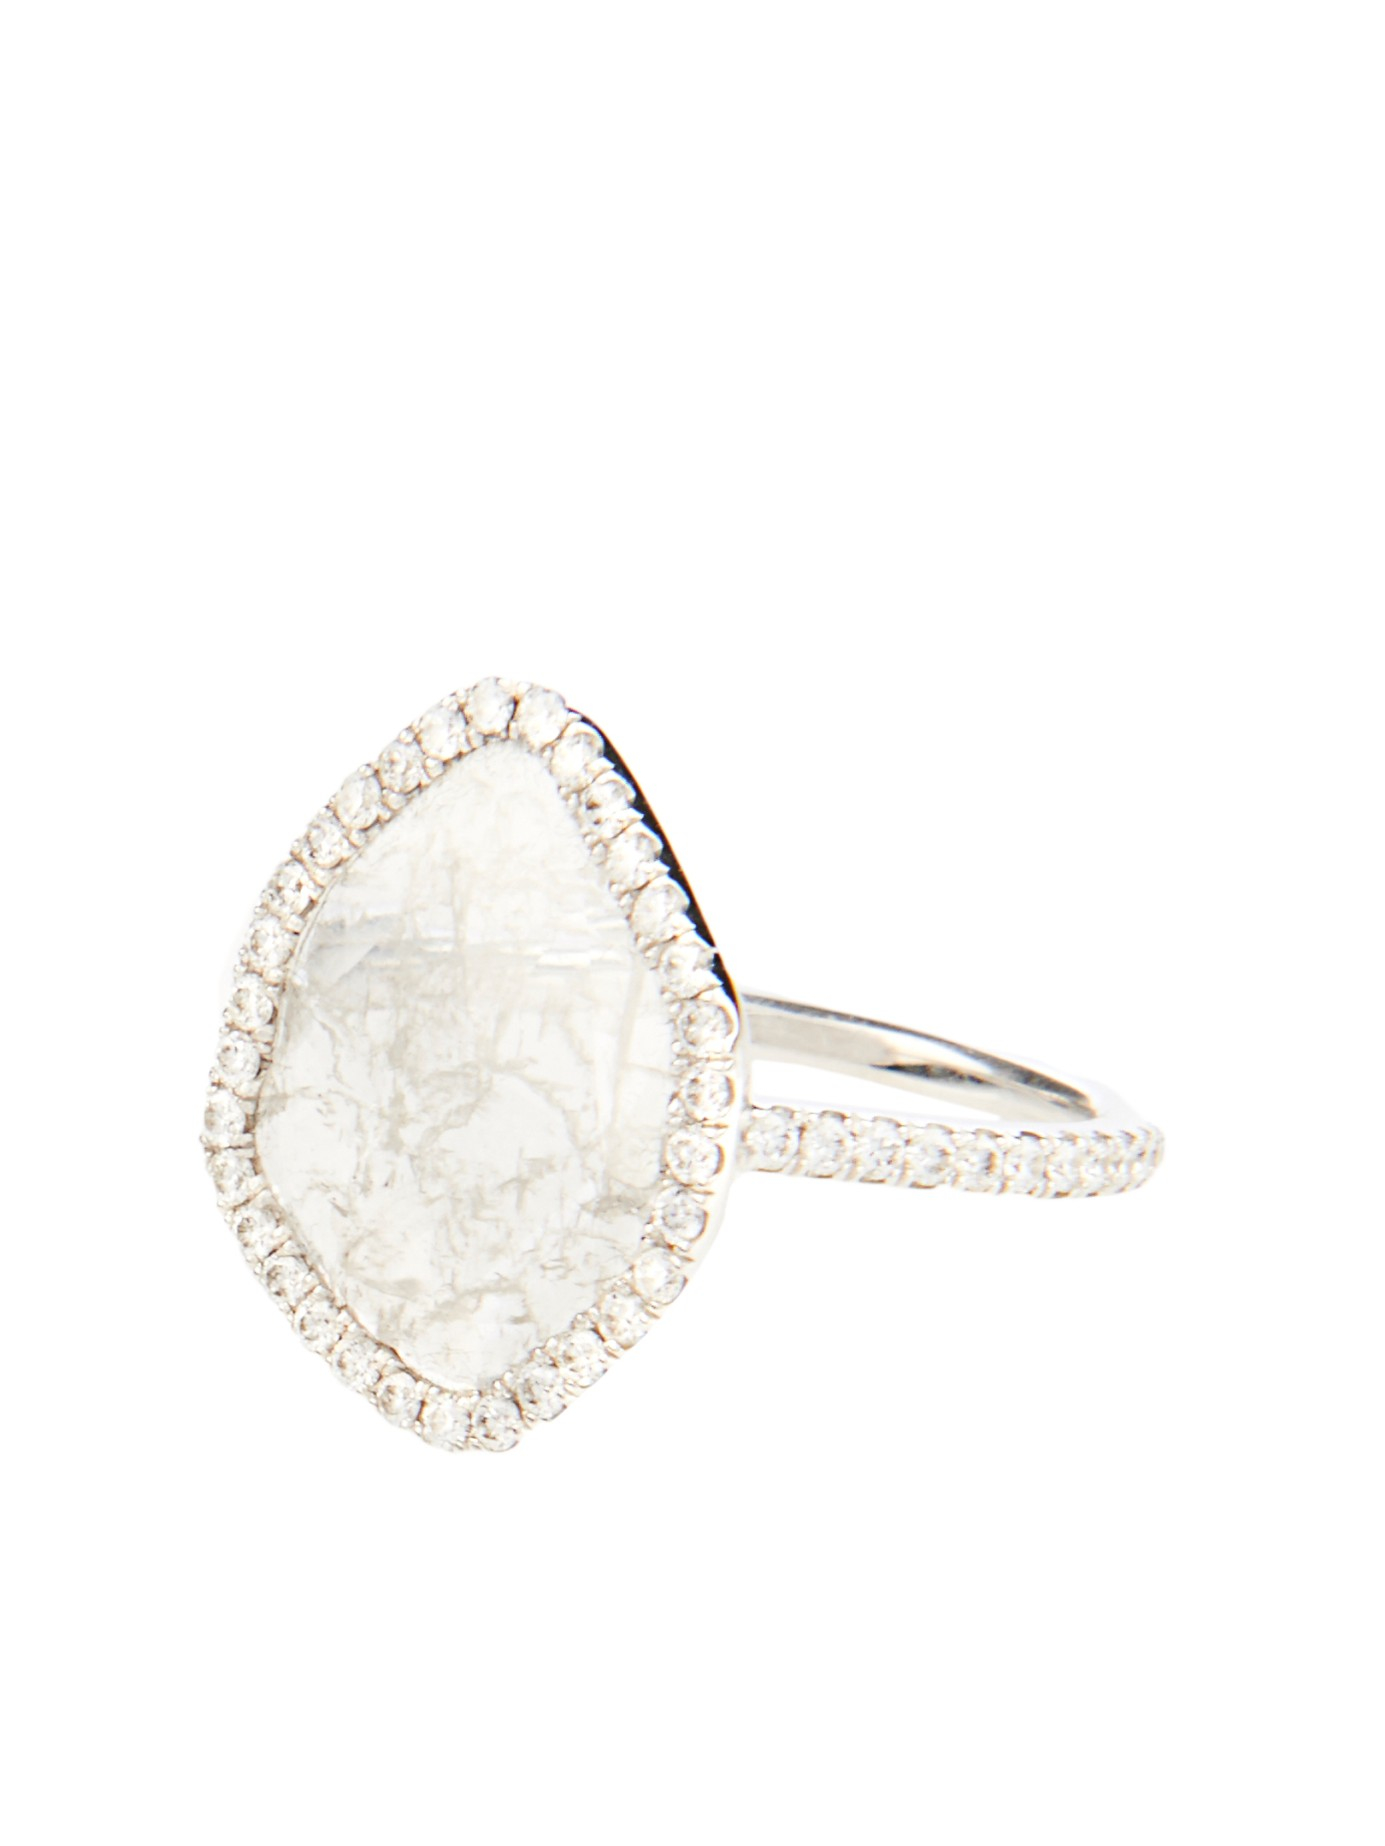 rings available pin diamond brooke new good bird pave gregson slice white stuff